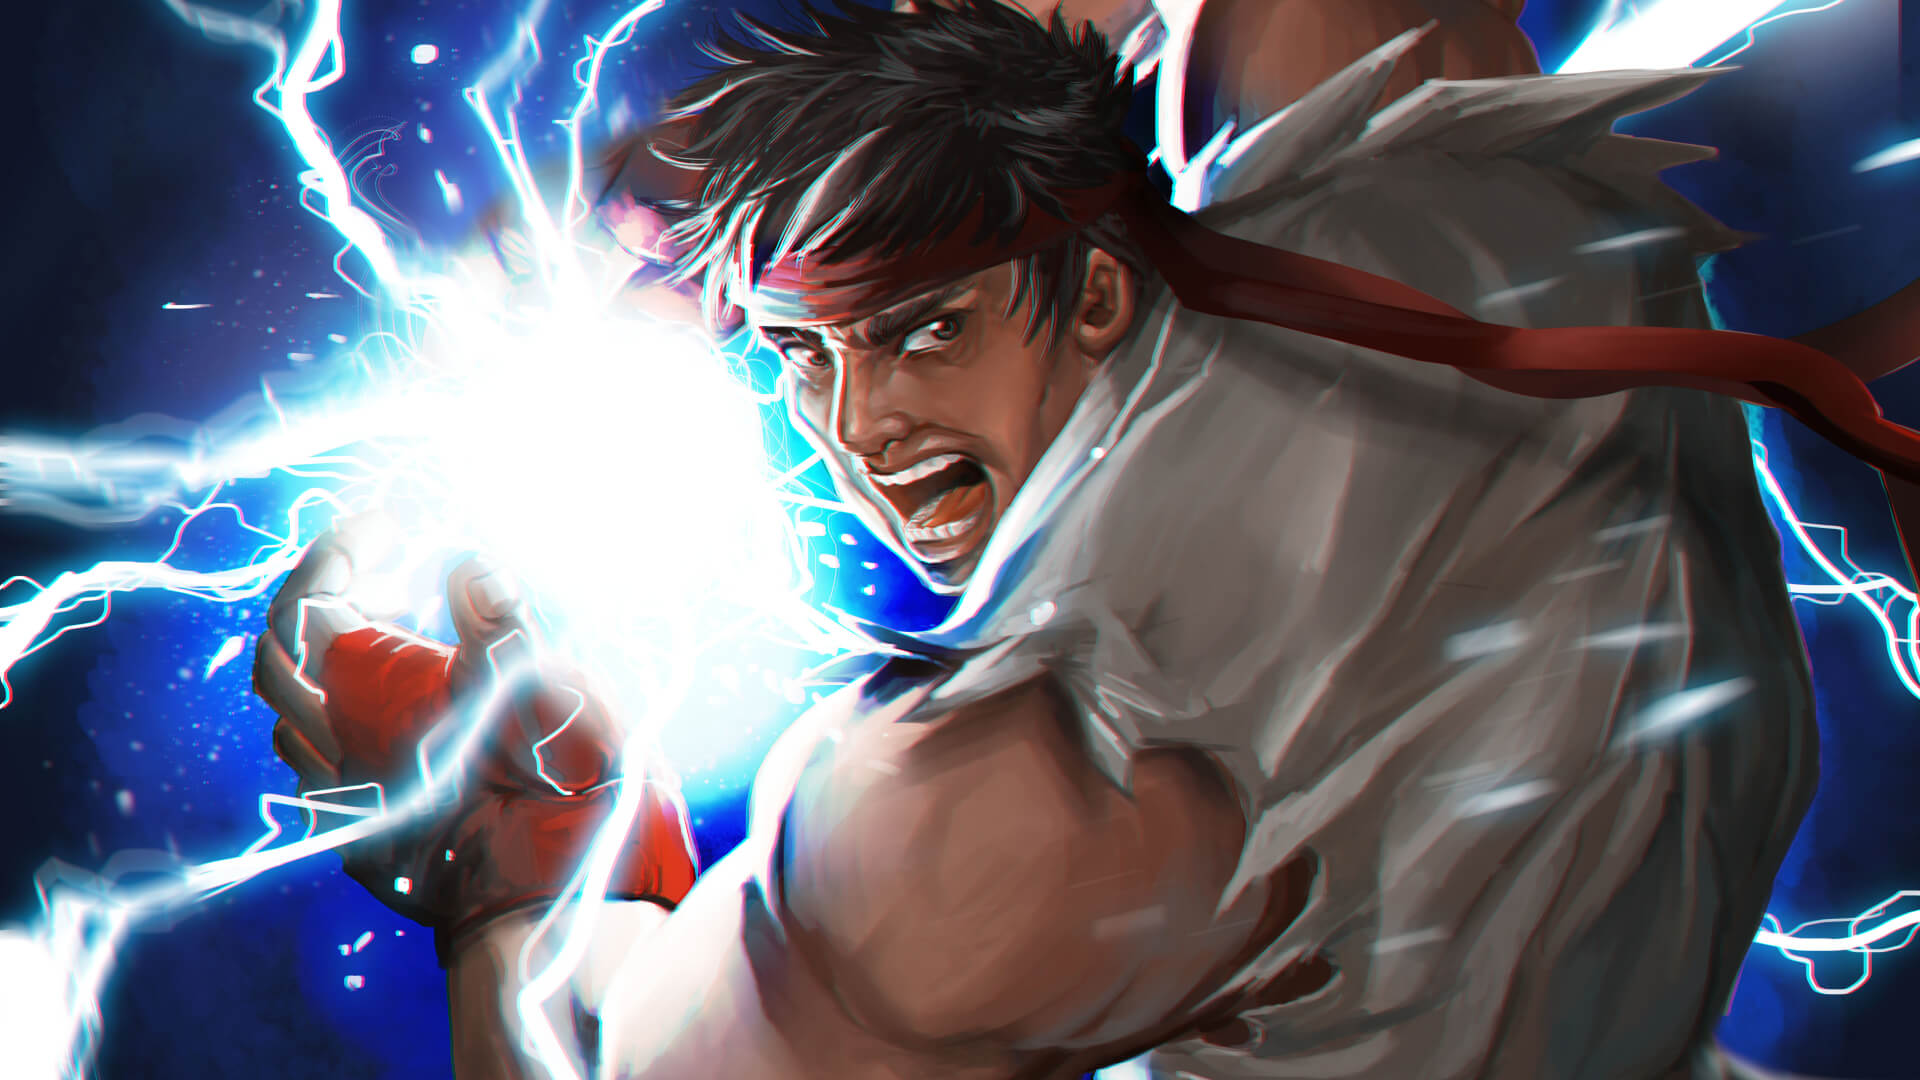 Street Fighter Creator Wants Nintendo vs Capcom Crossover